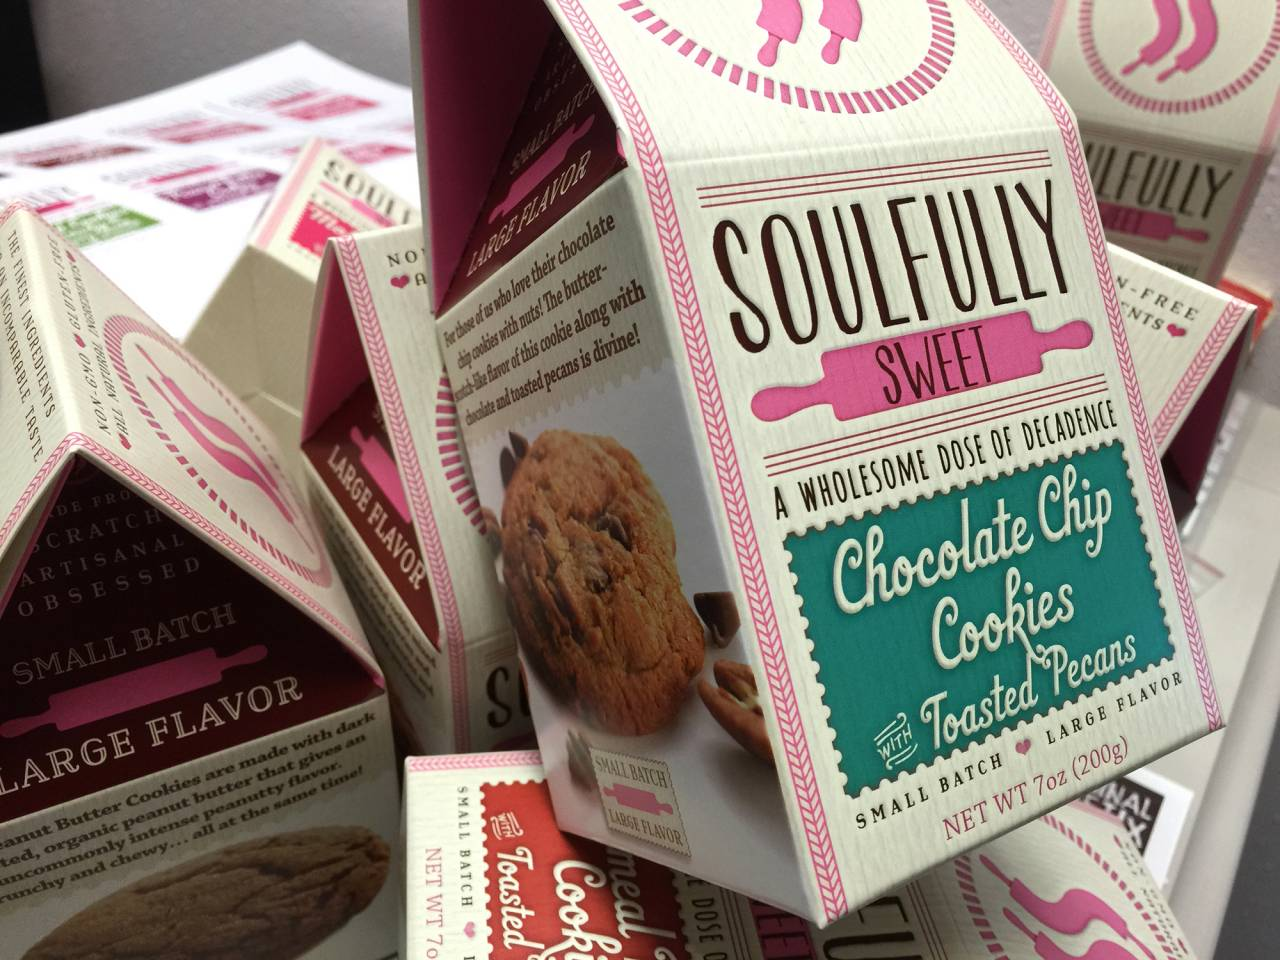 Soulfully Sweet Rebranding -- package design